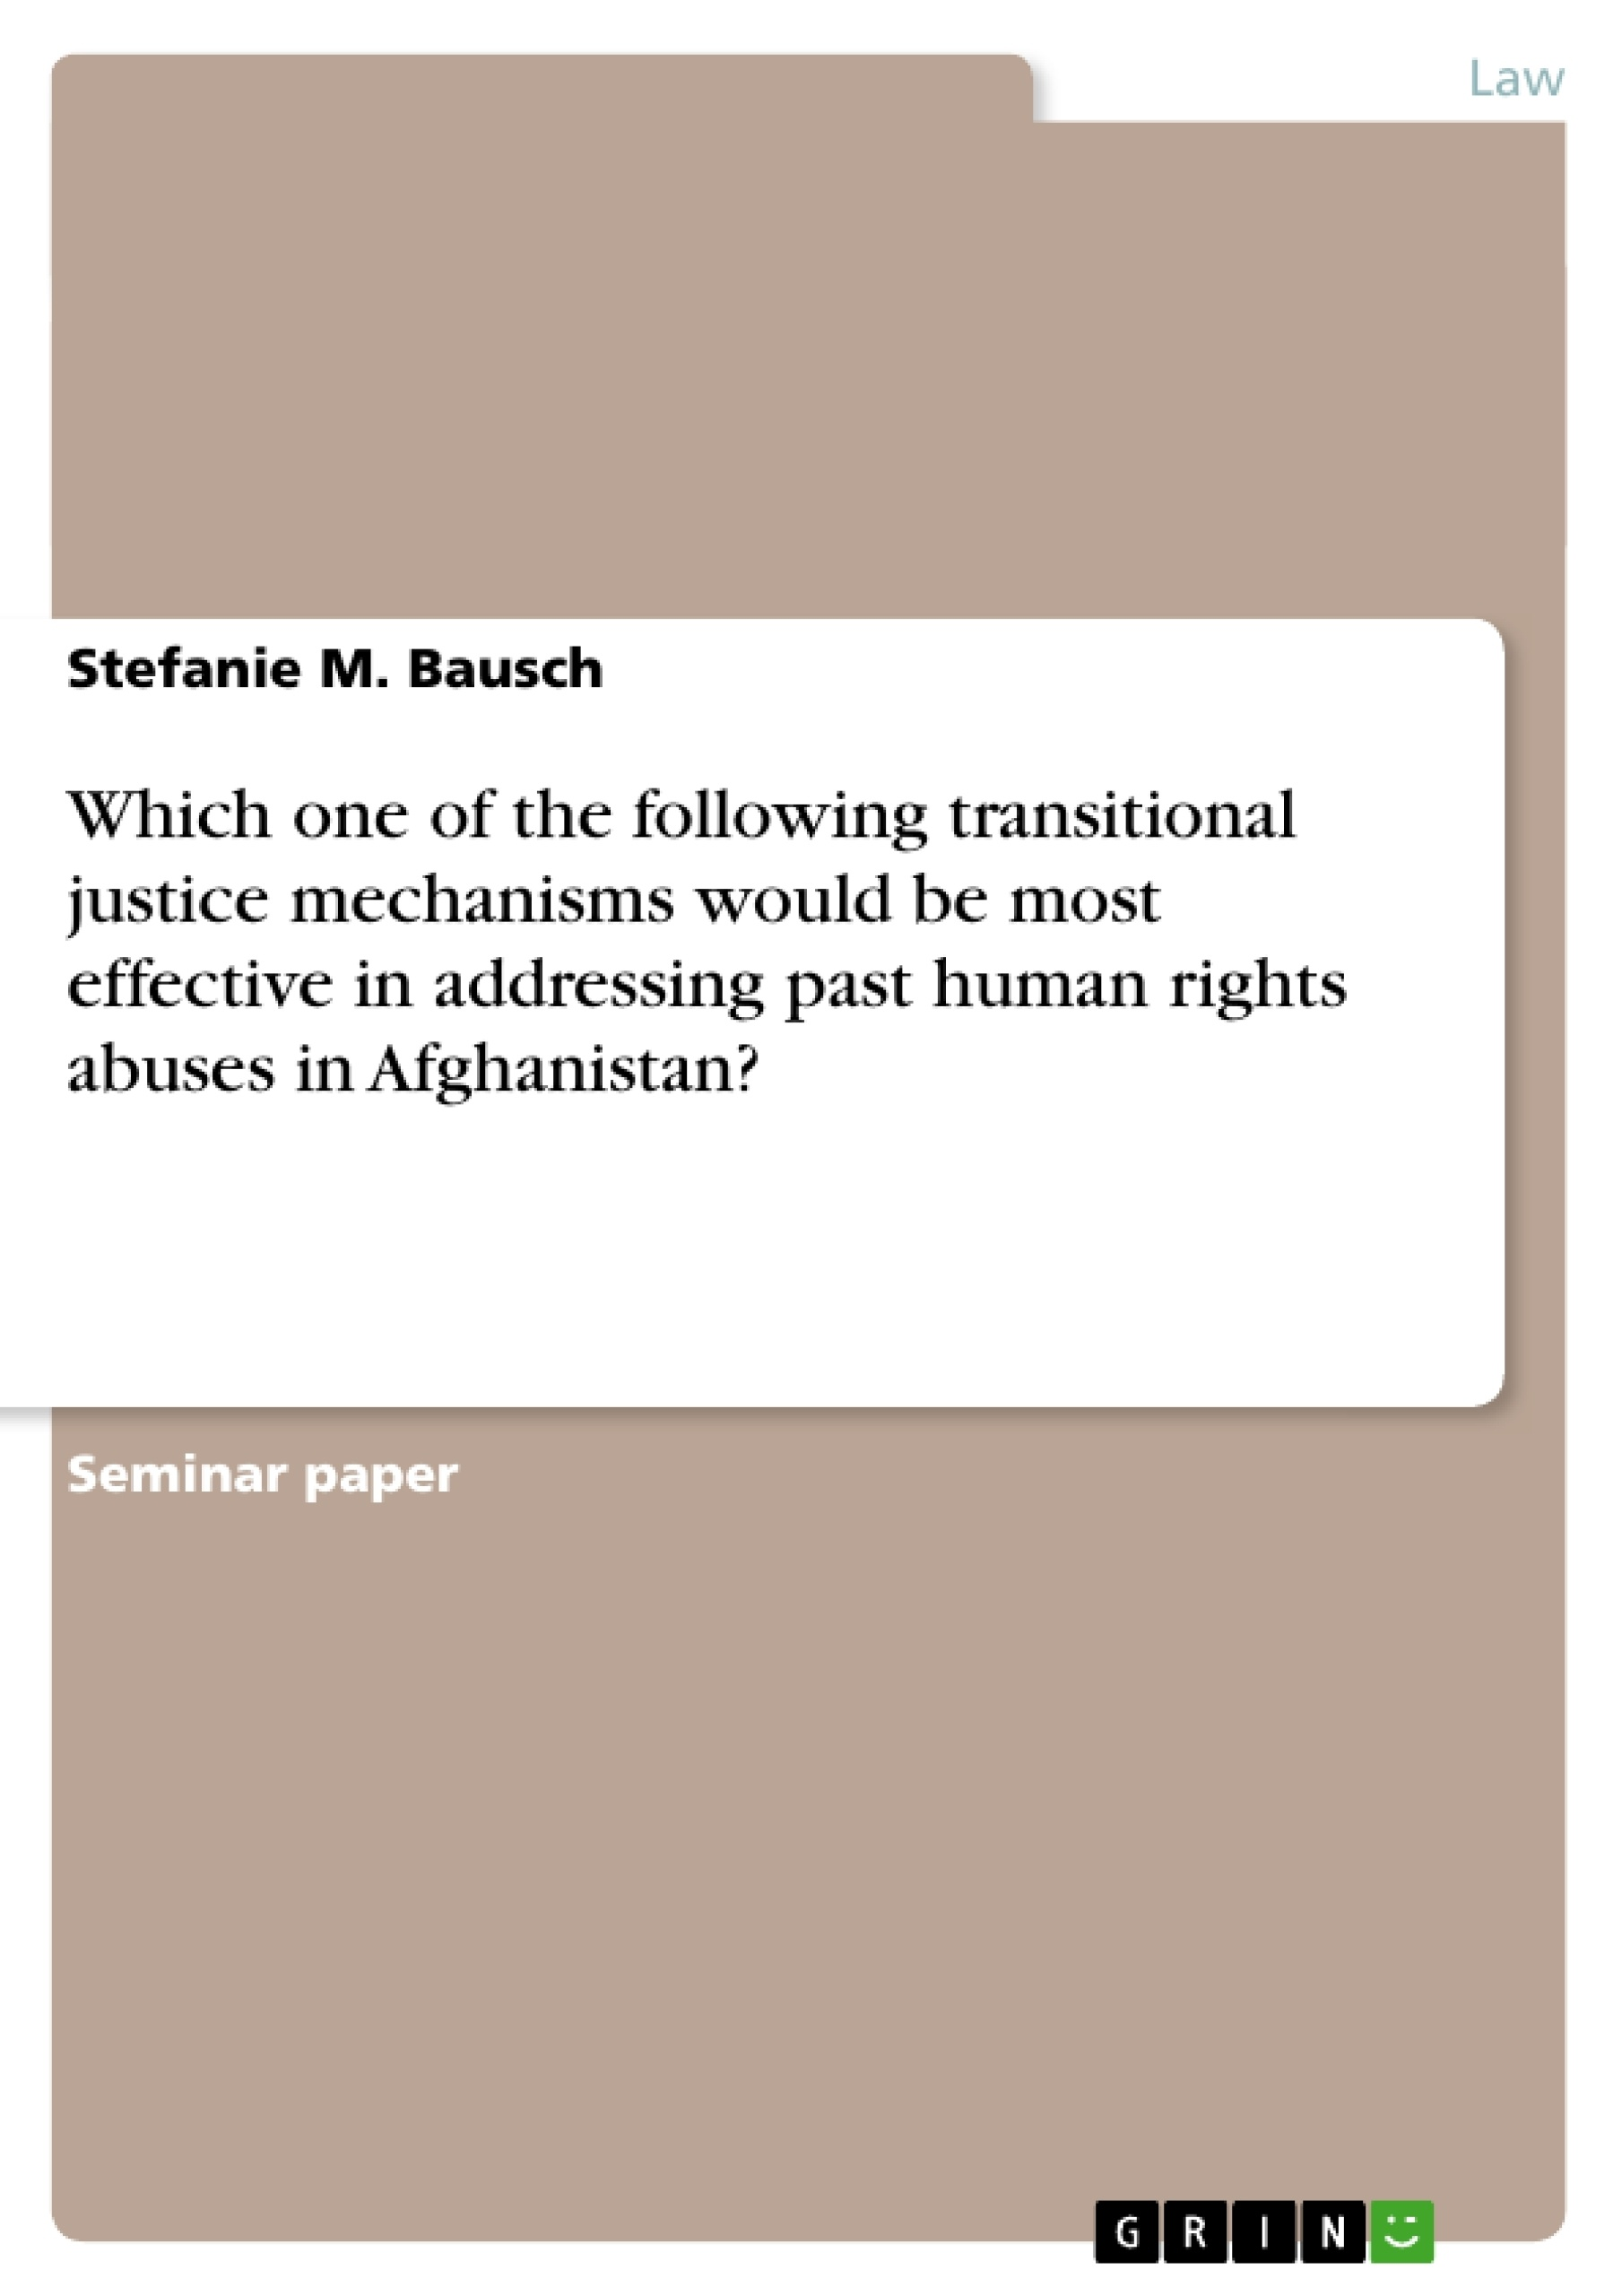 Title: Which one of the following transitional justice mechanisms would be most effective in addressing past human rights abuses in Afghanistan?